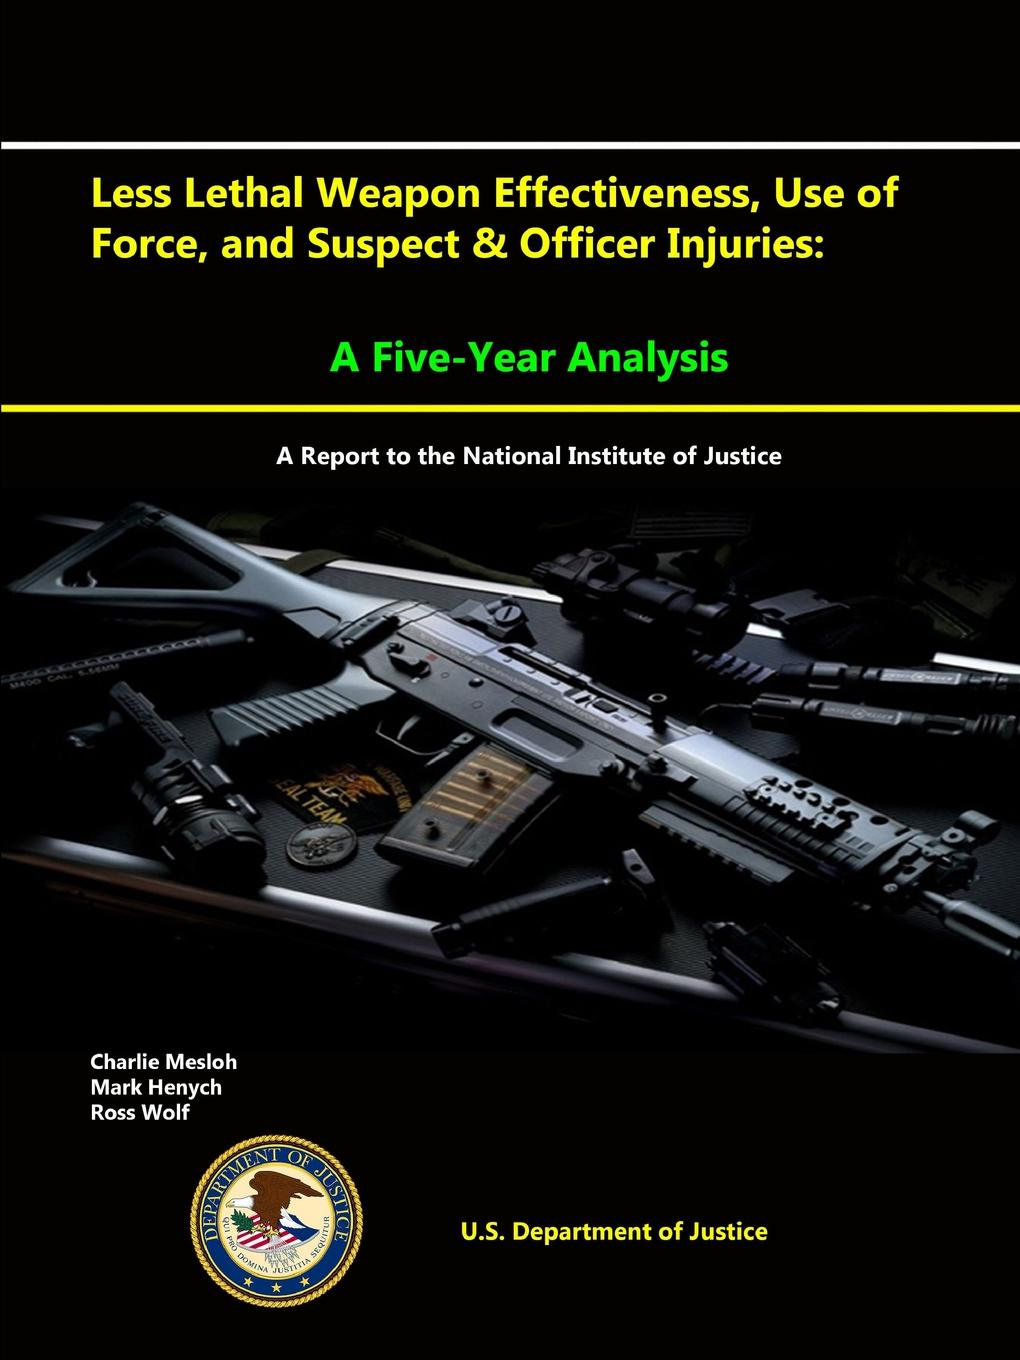 U.S. Department of Justice Less Lethal Weapon Effectiveness, Use of Force, and Suspect . Officer Injuries. A Five-Year Analysis (A report to the National Institute of Justice)